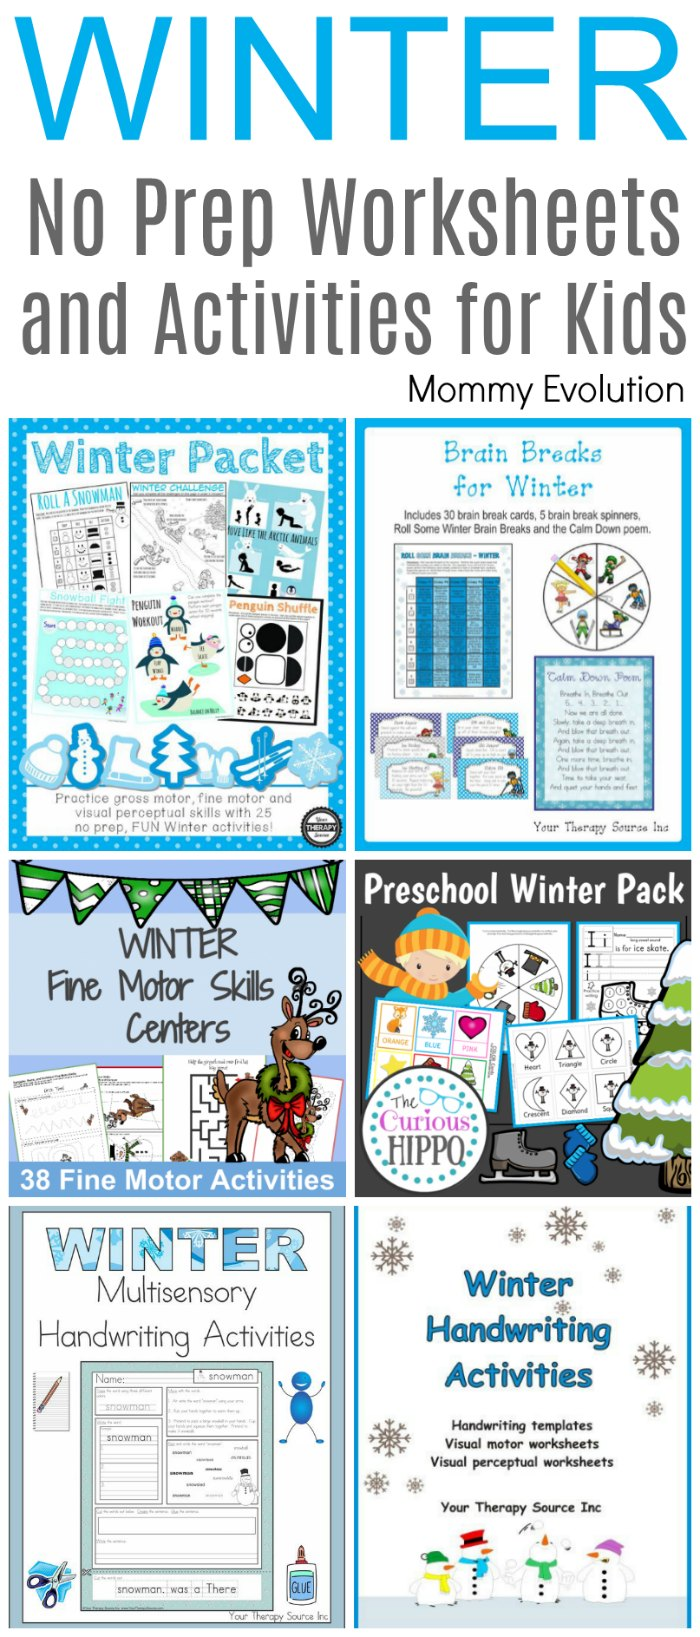 Winter No Prep Worksheets and Activities for Kids | Mommy Evolution - Perfect for preschool and elementary school classrooms as well as occupational therapy